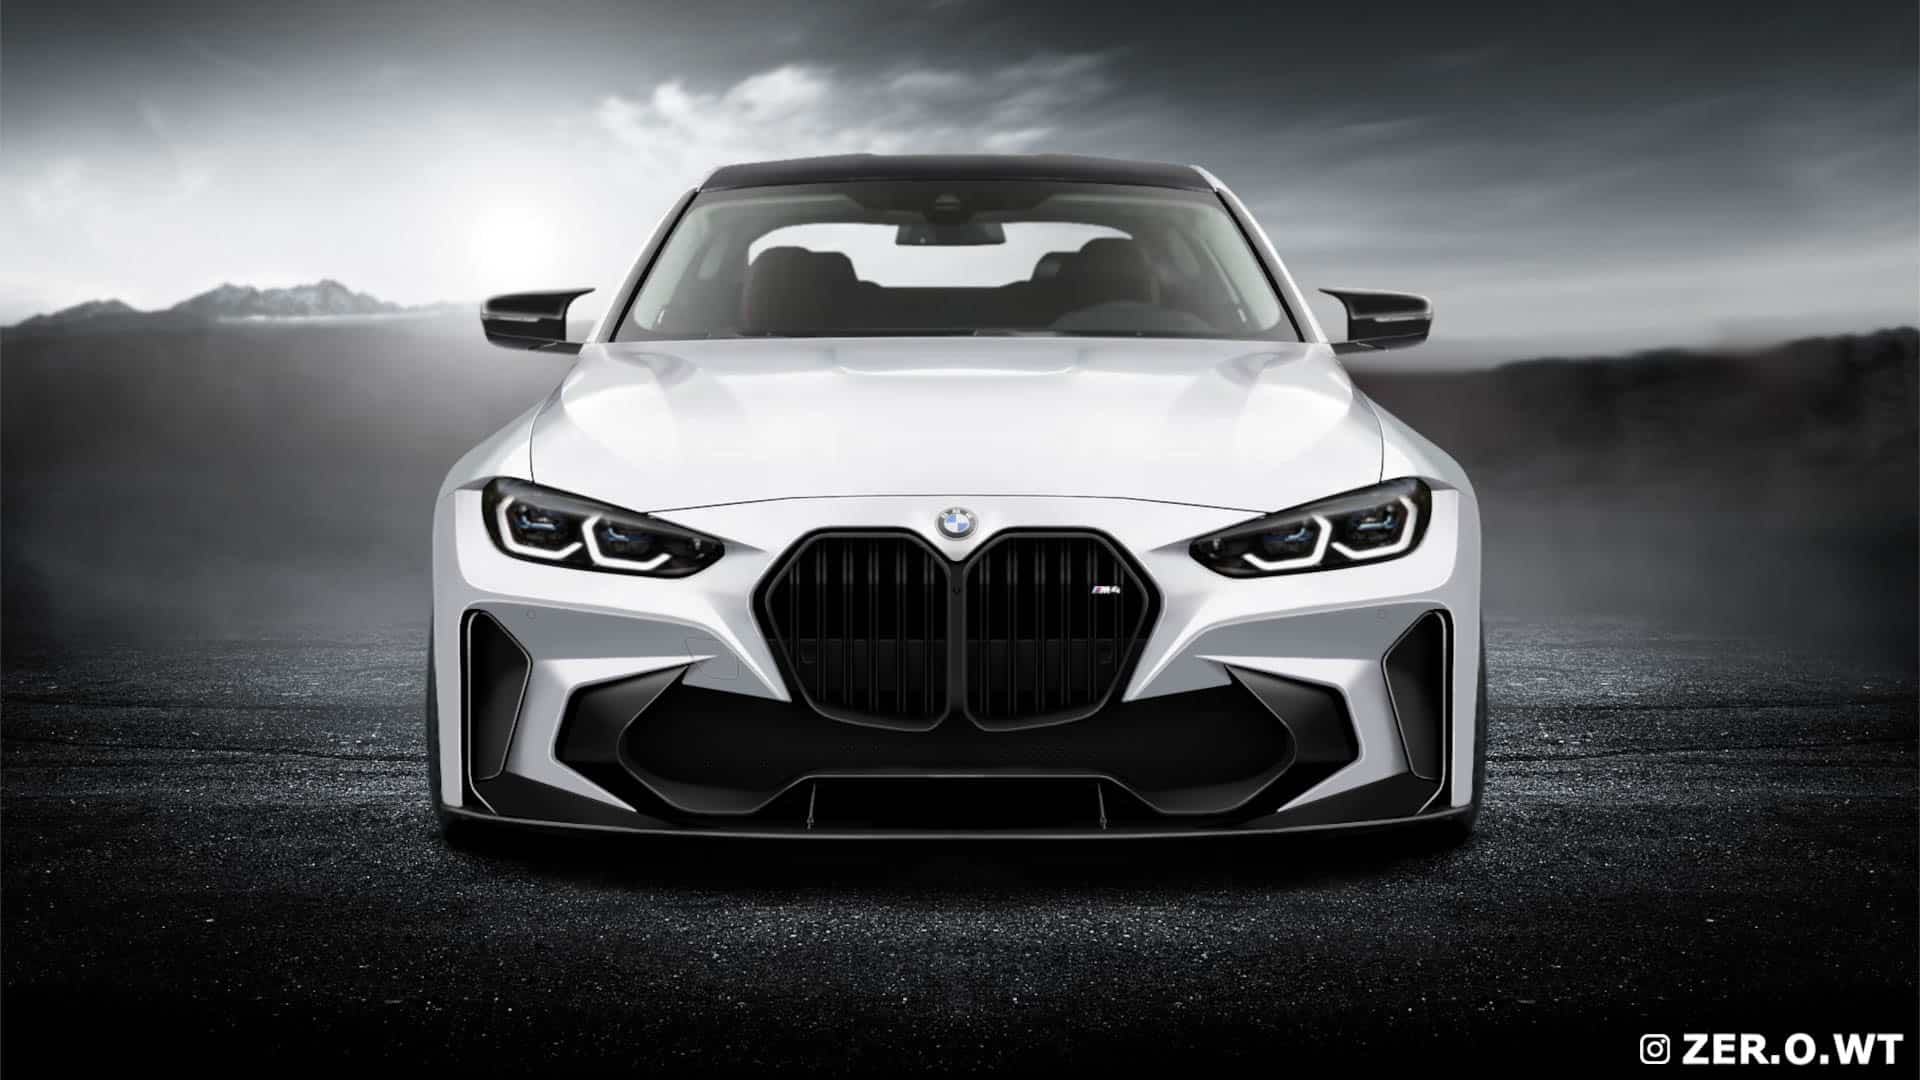 Check Out This Bmw M4 Re Design With New Grille And Widebody Kit